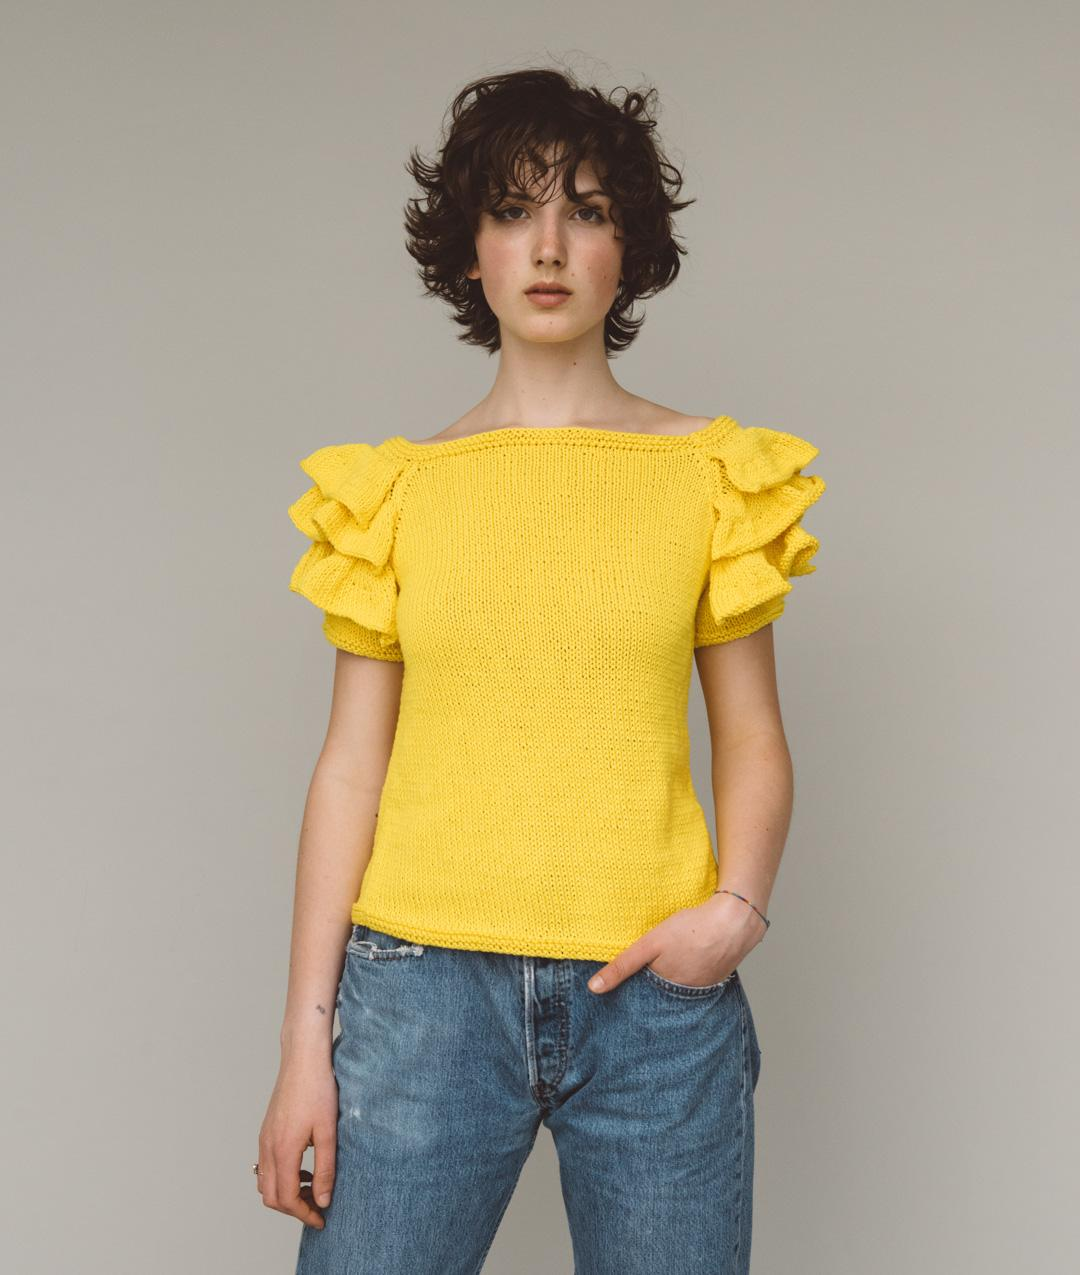 Summer Collection - Sweaters and Tops - Daffodil Tee - 1